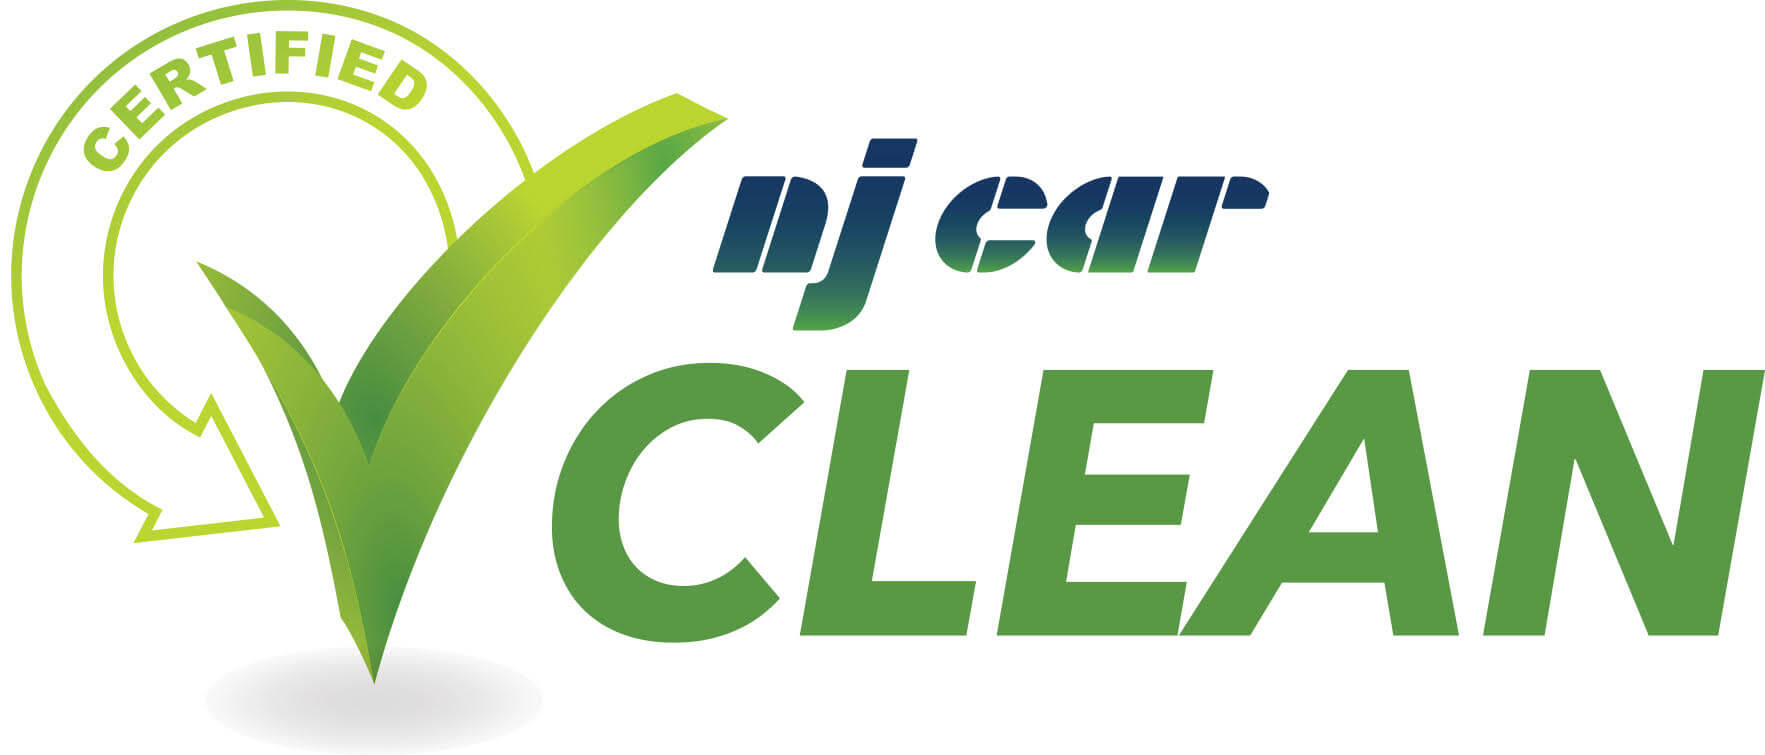 nj car clean